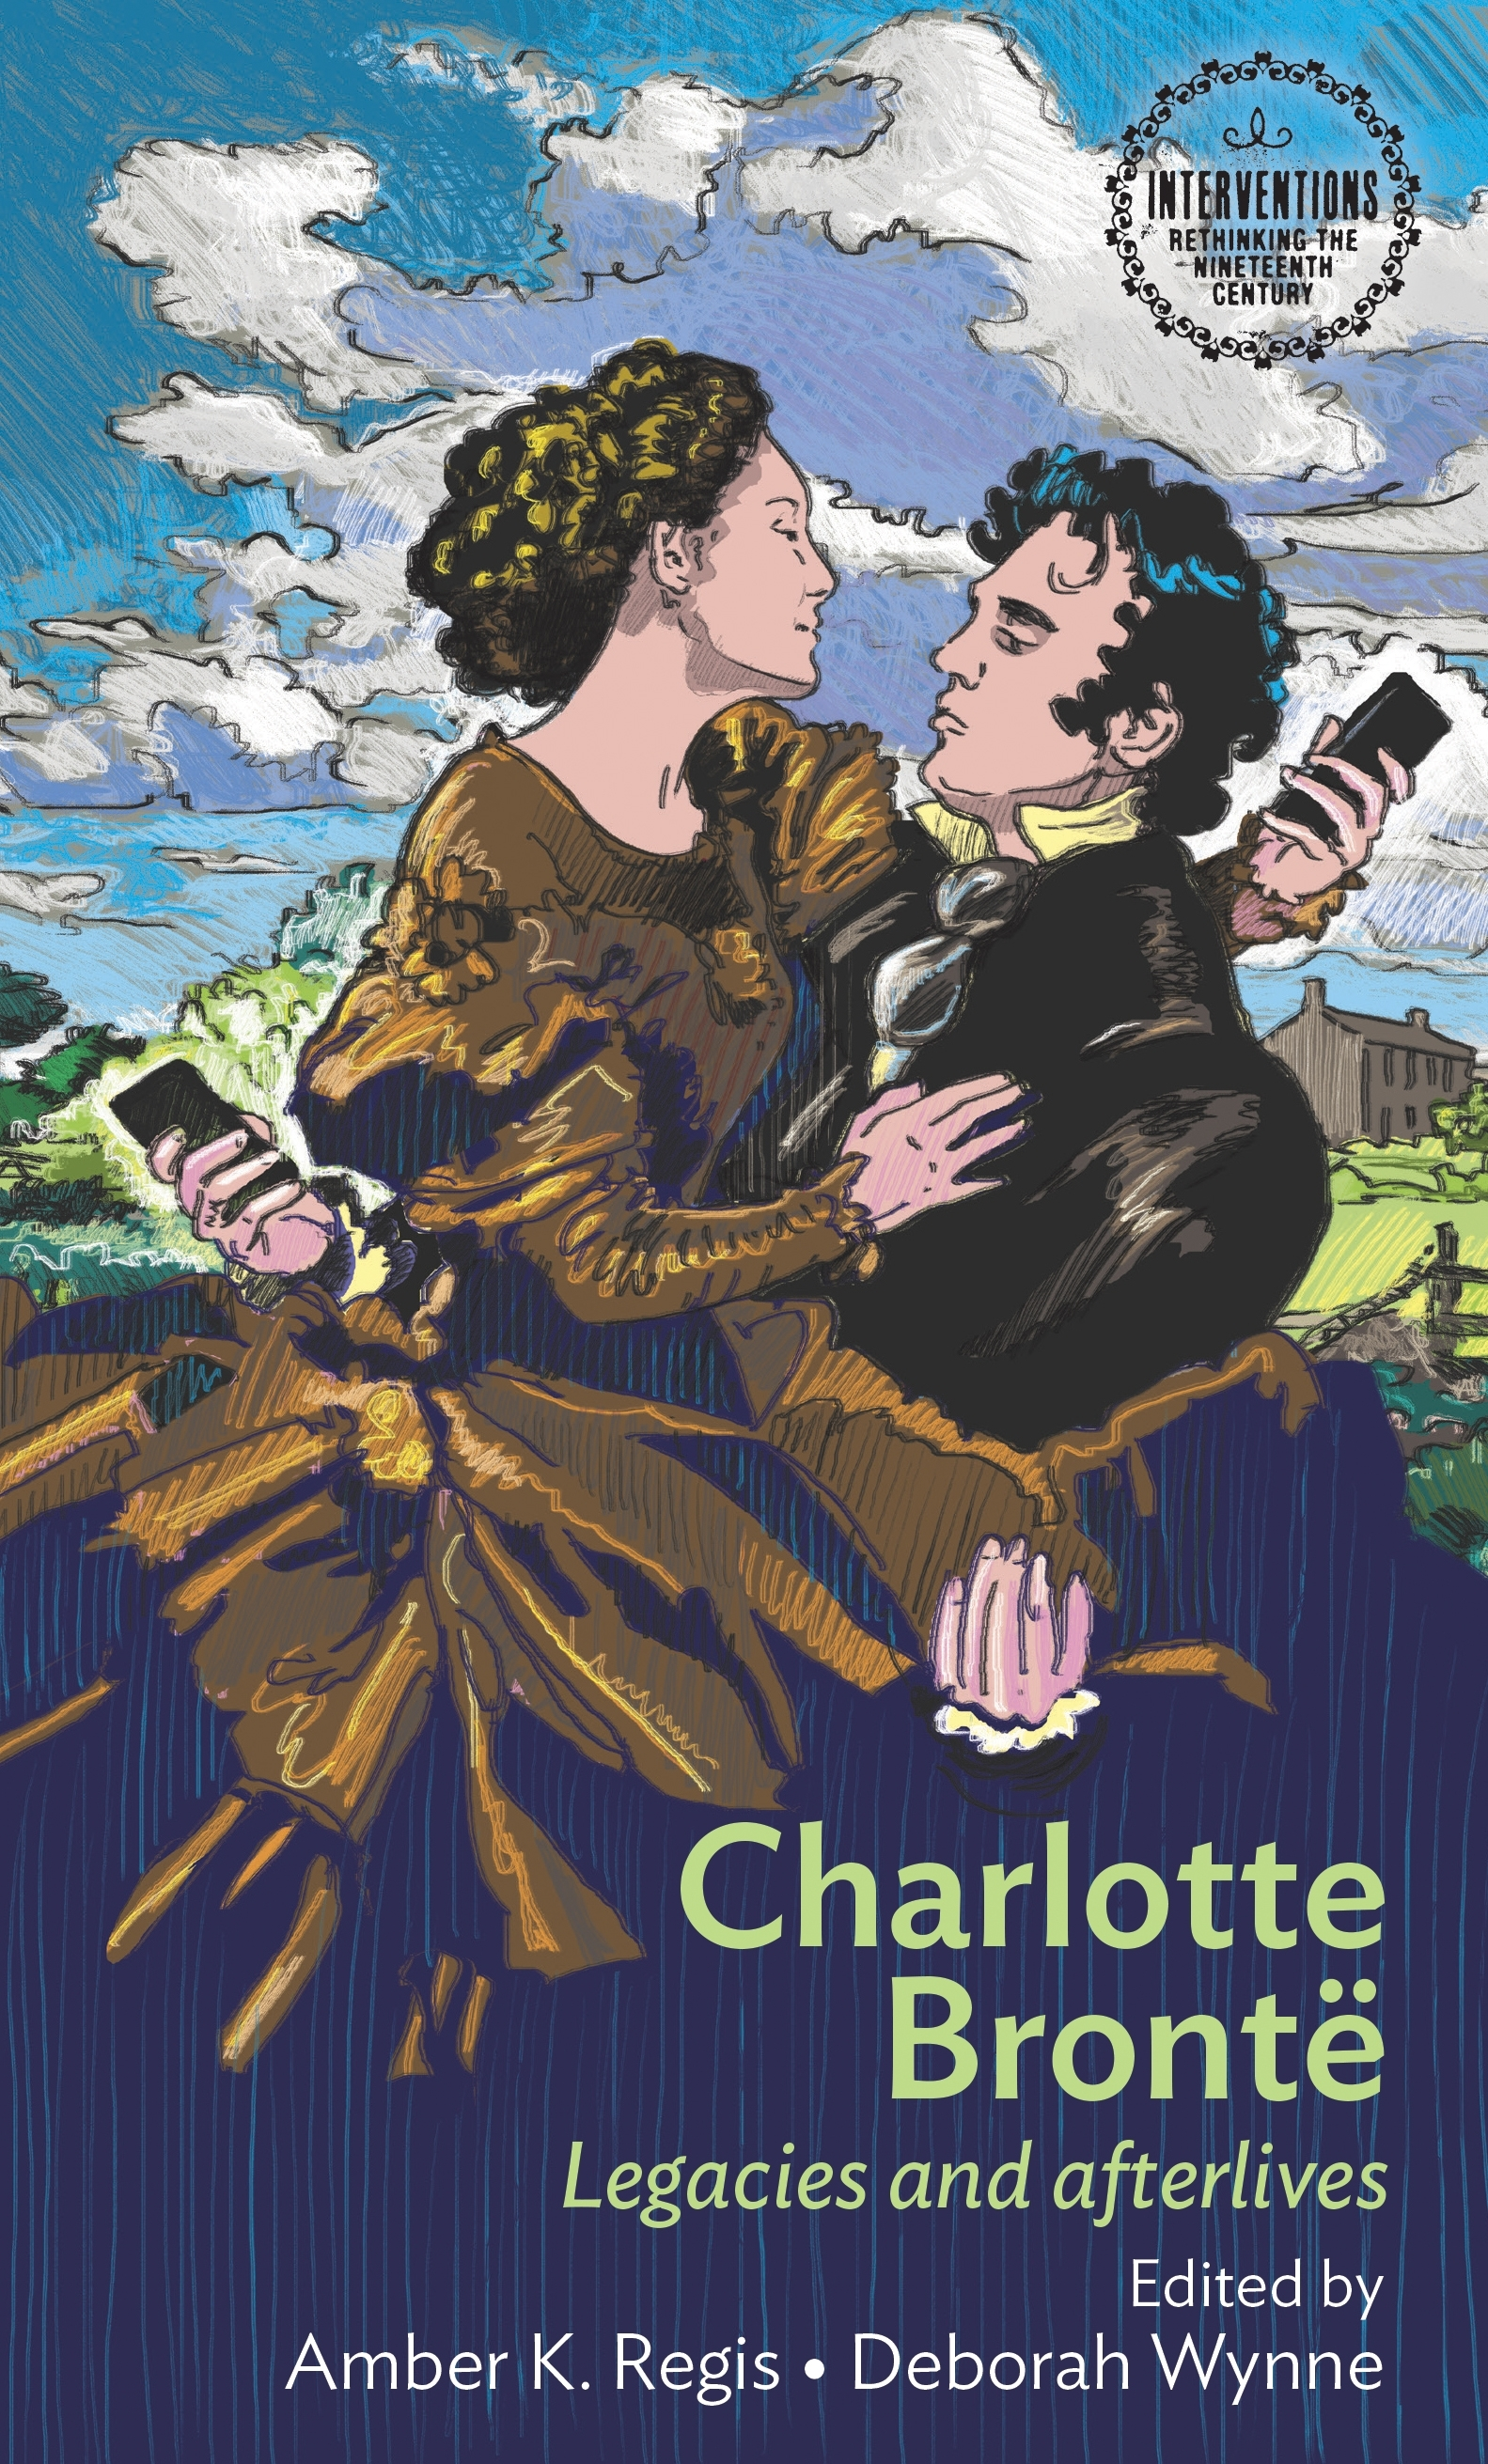 Charlotte Brontë: Legacies and afterlives